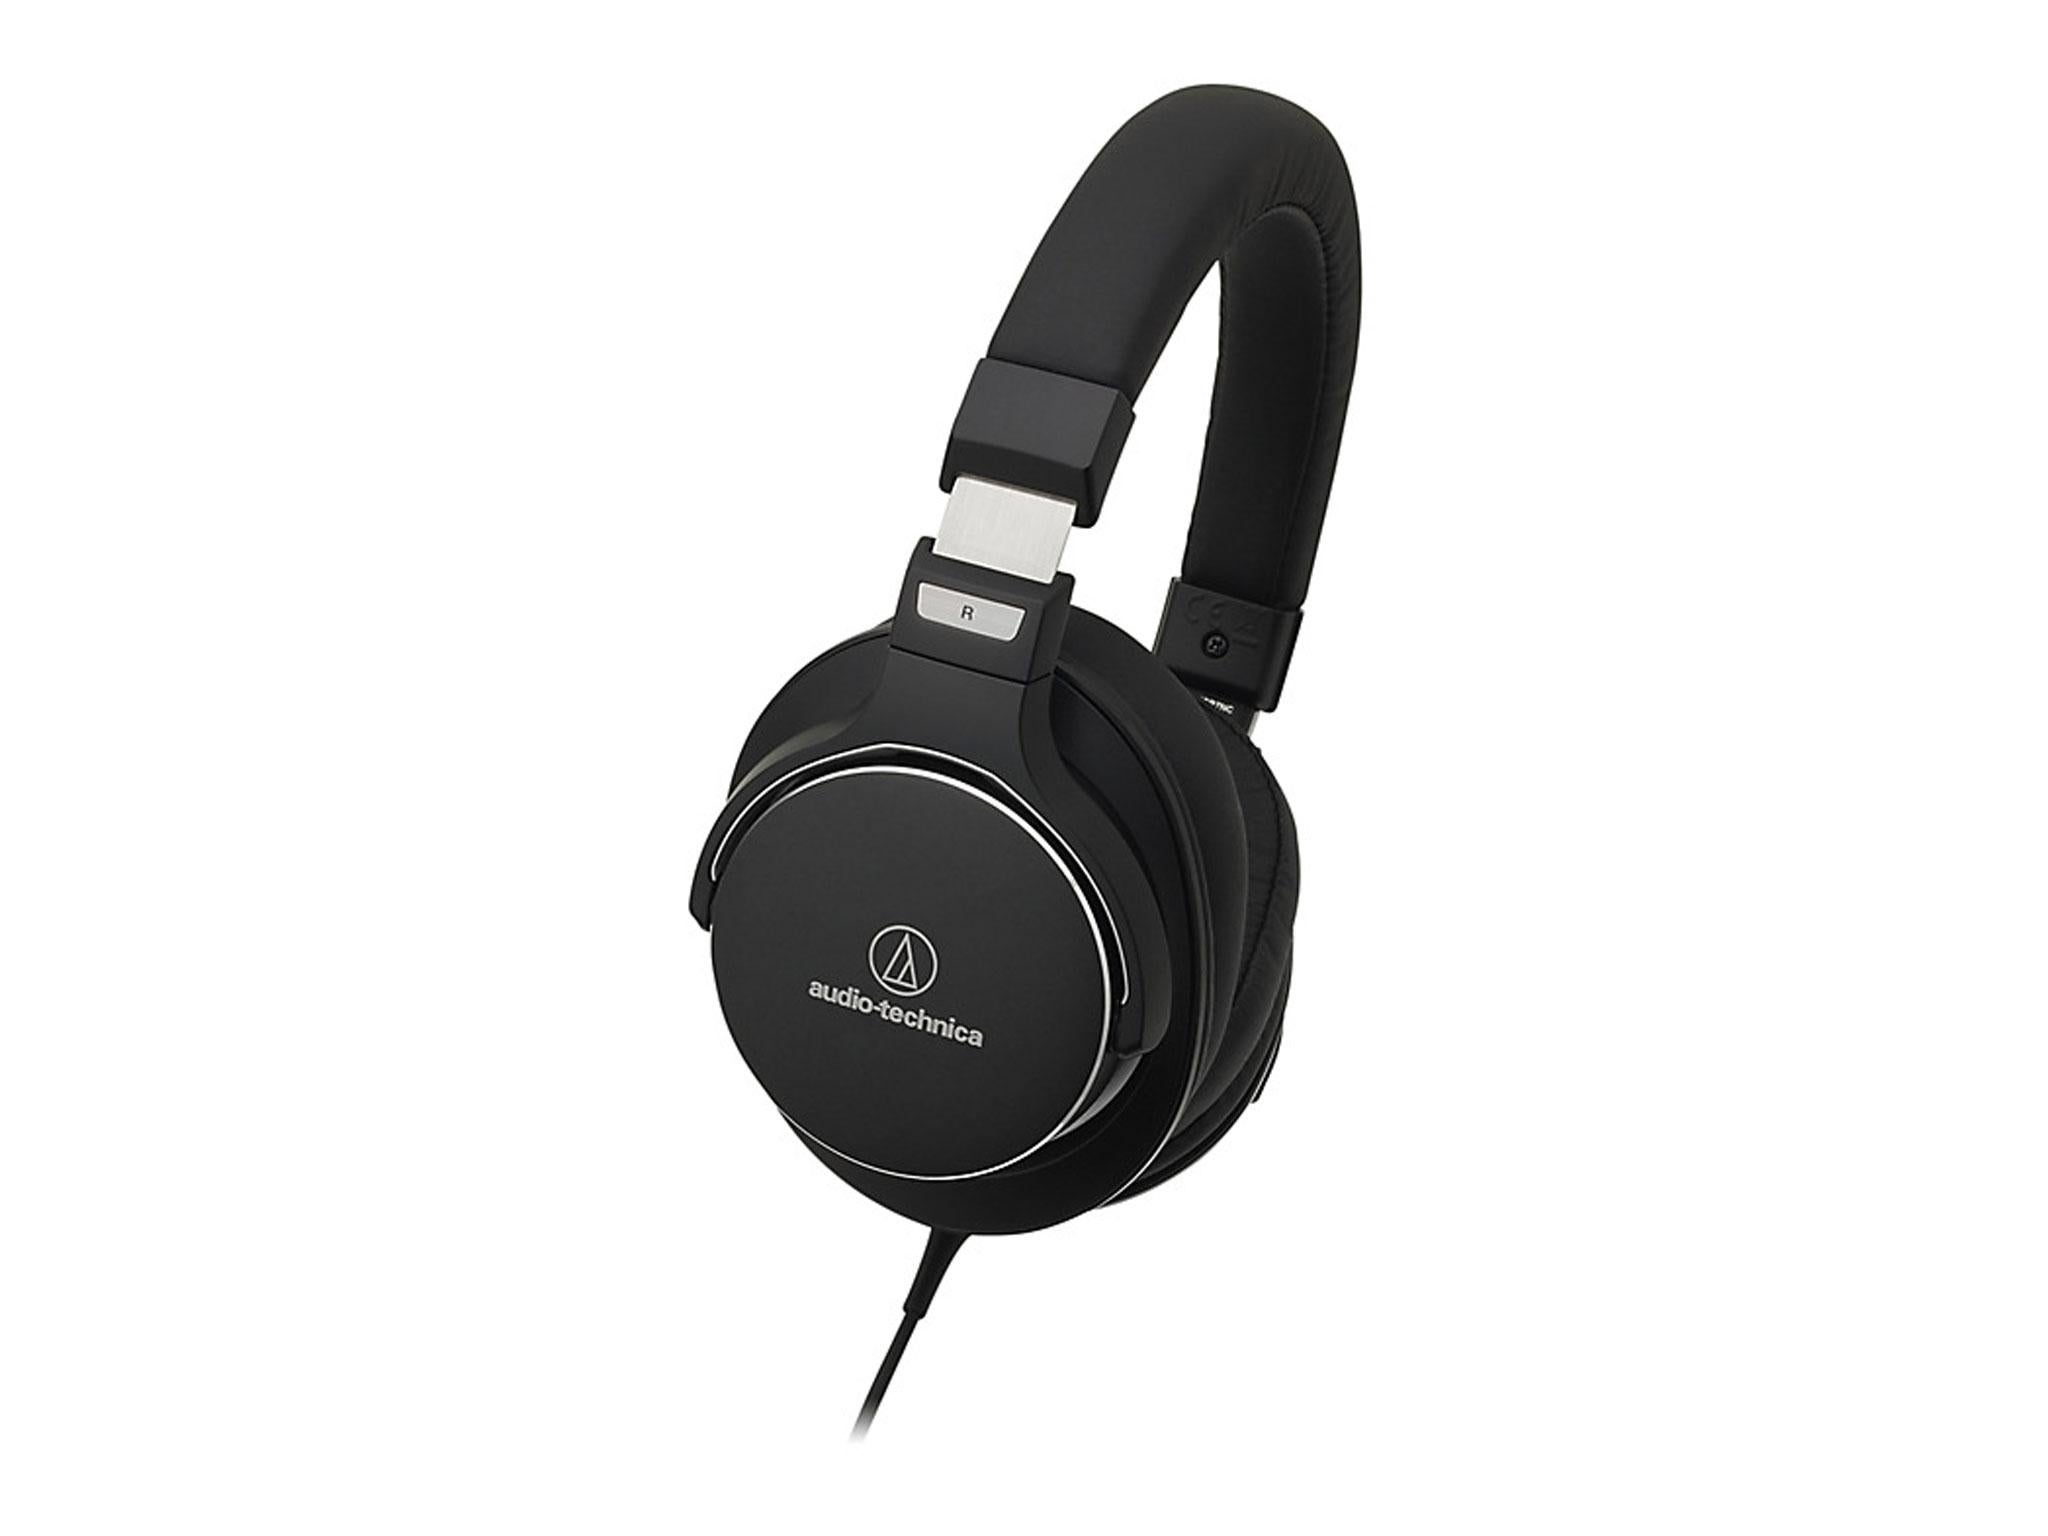 9 Best Noise Cancelling Headphones The Independent Bose Quietcomfort Qc25 Headphone For Apple Devices White